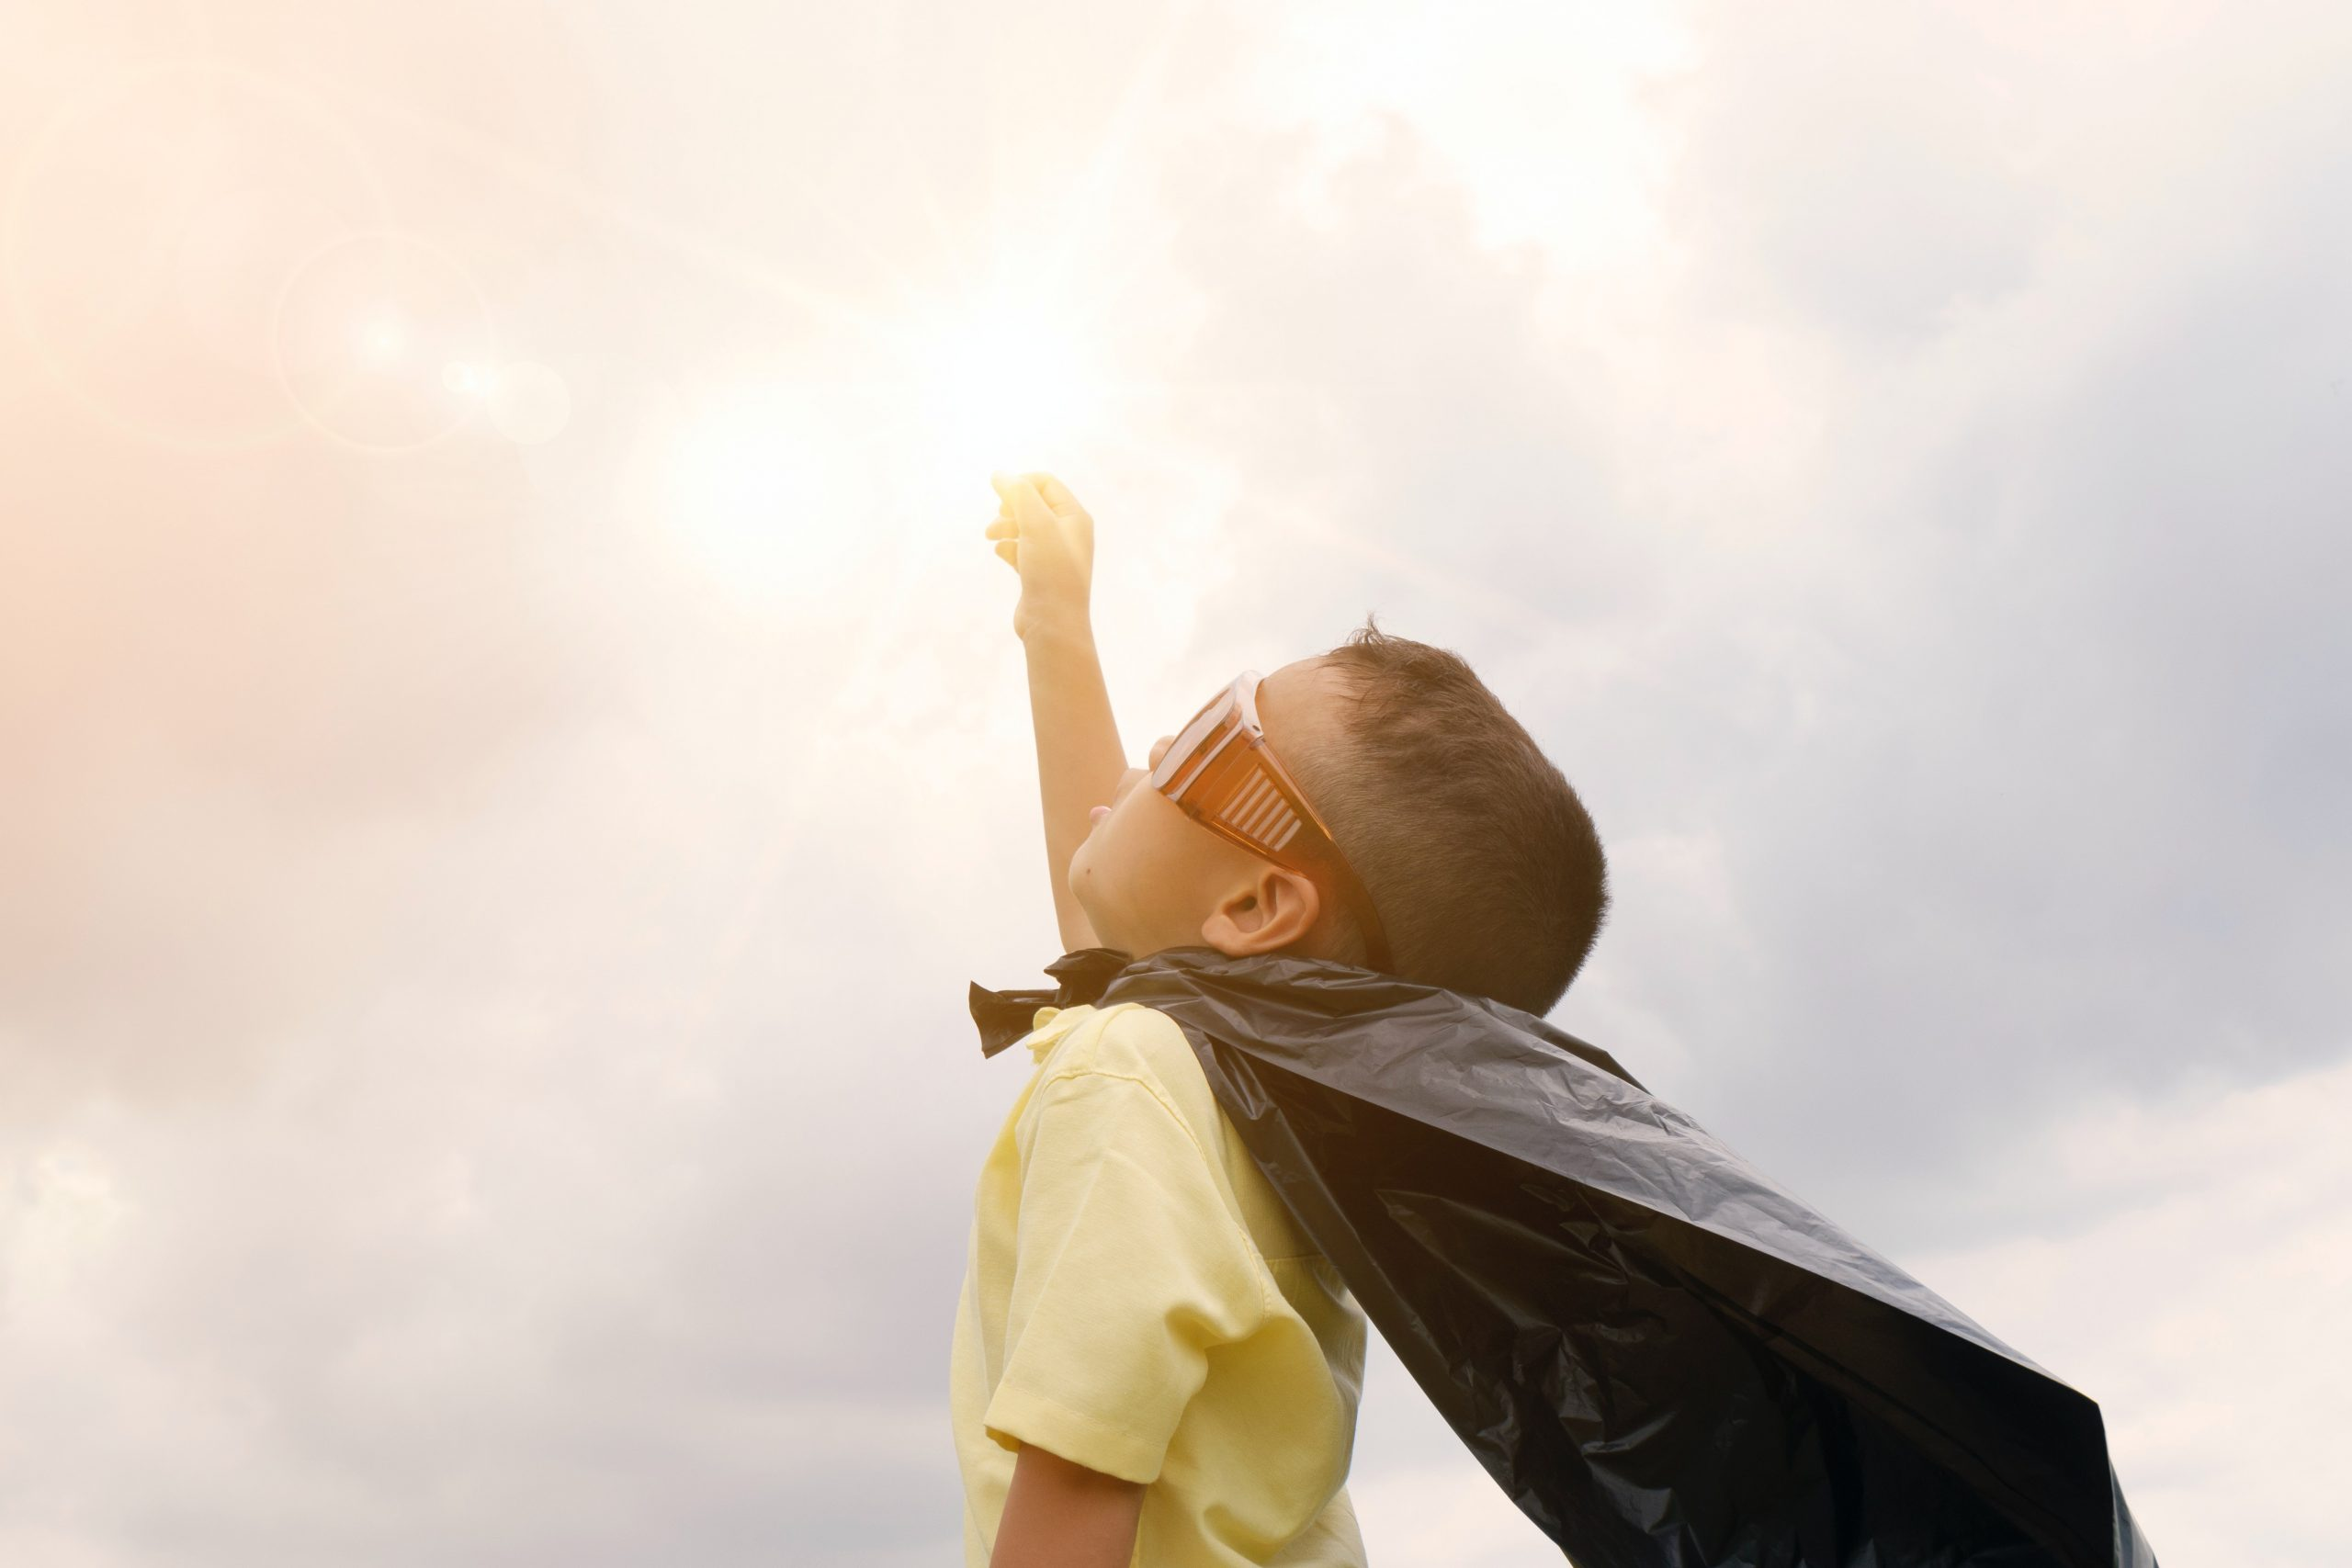 Life Lessons: How the Hero's Journey Can Teach Kids About Perseverance